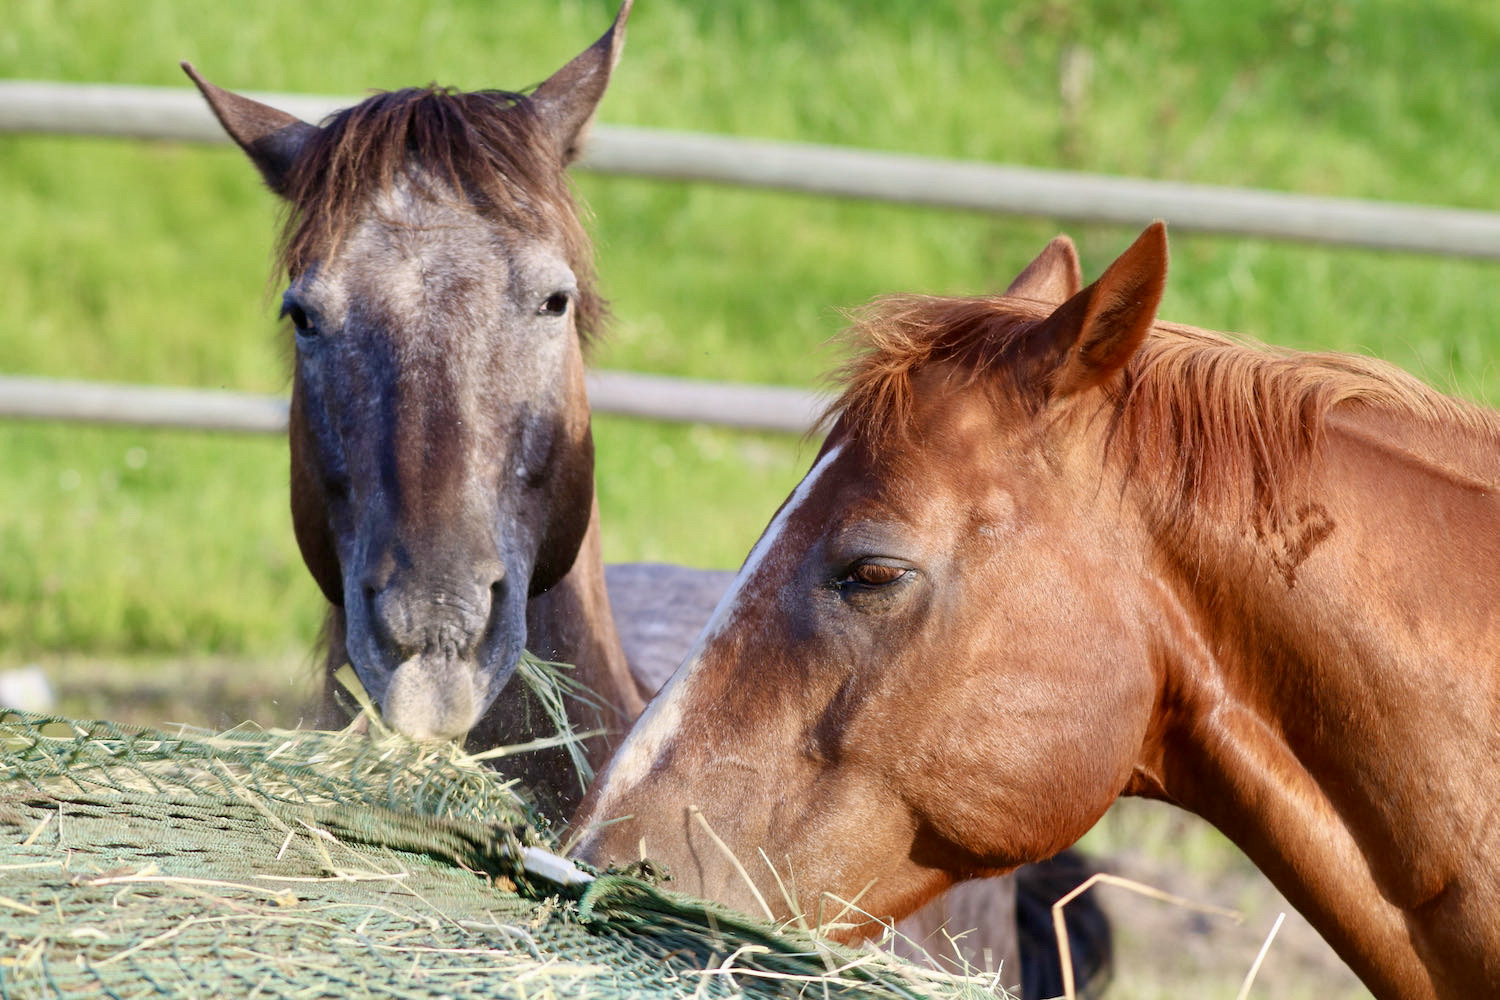 two horses are eating hay from a stack